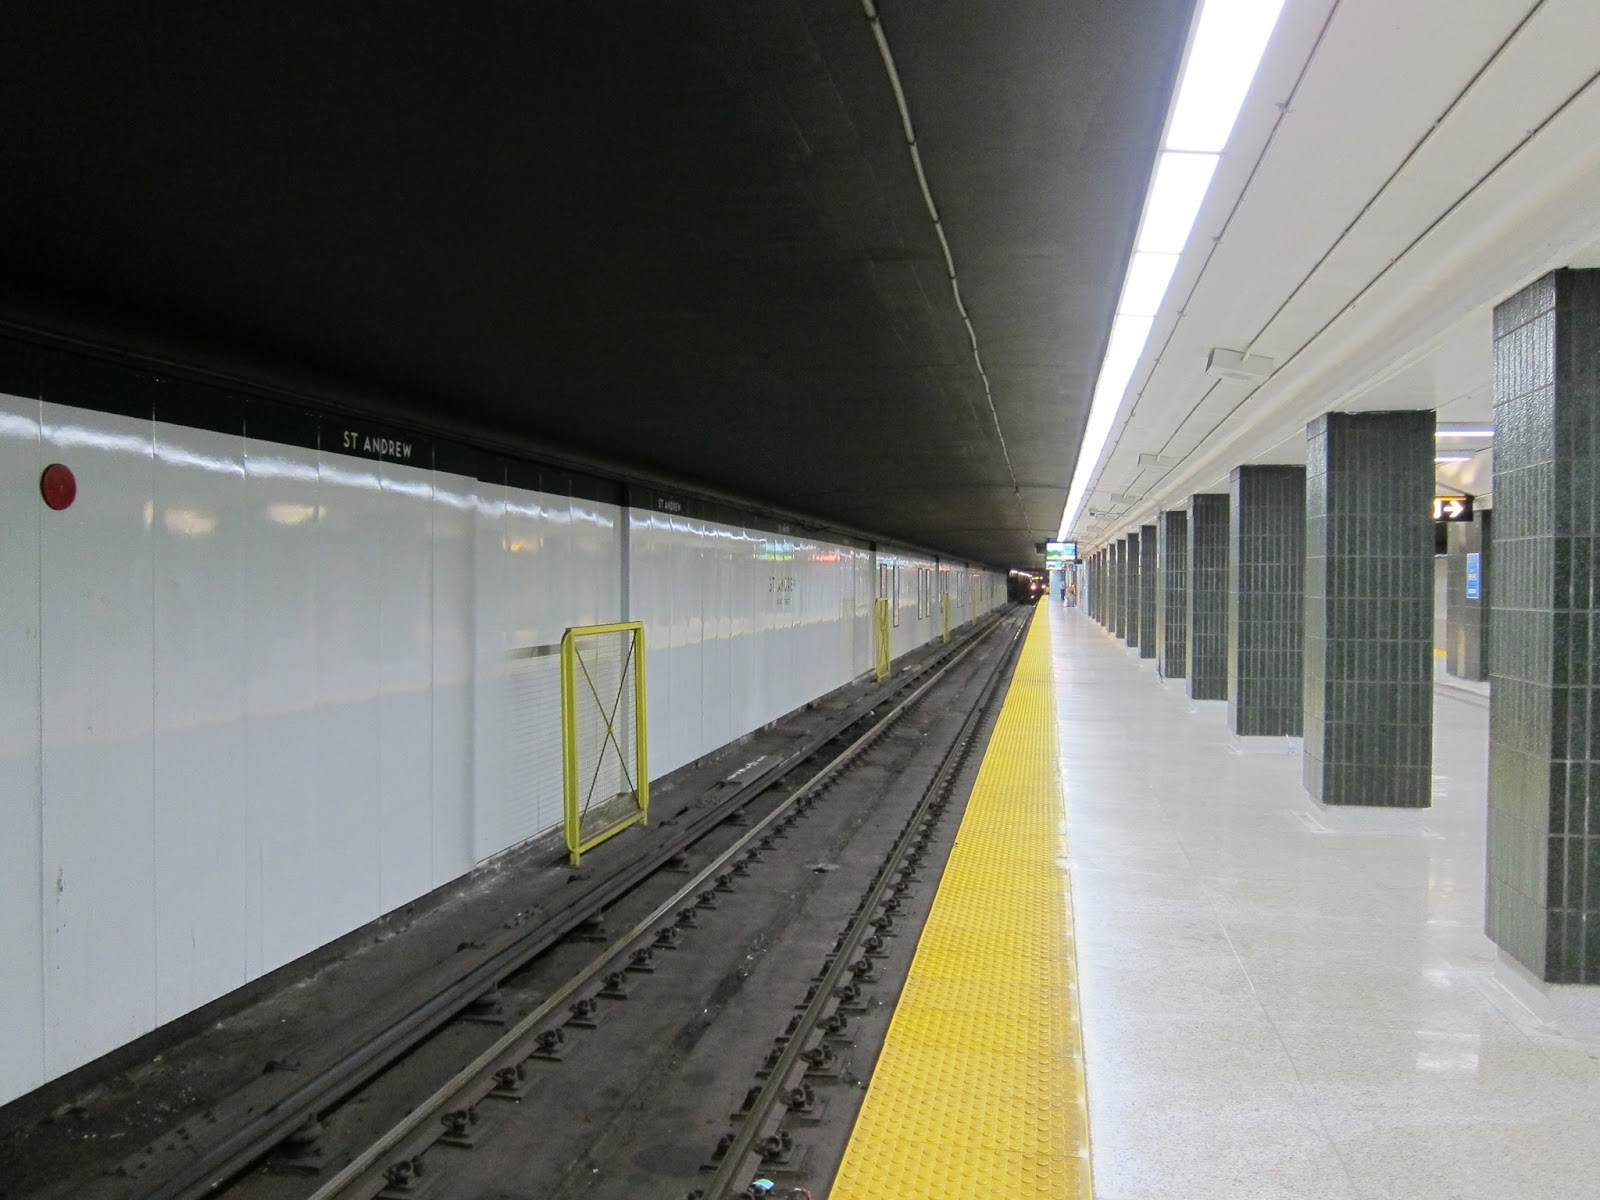 Clean lines at St. Andrew station's platform level